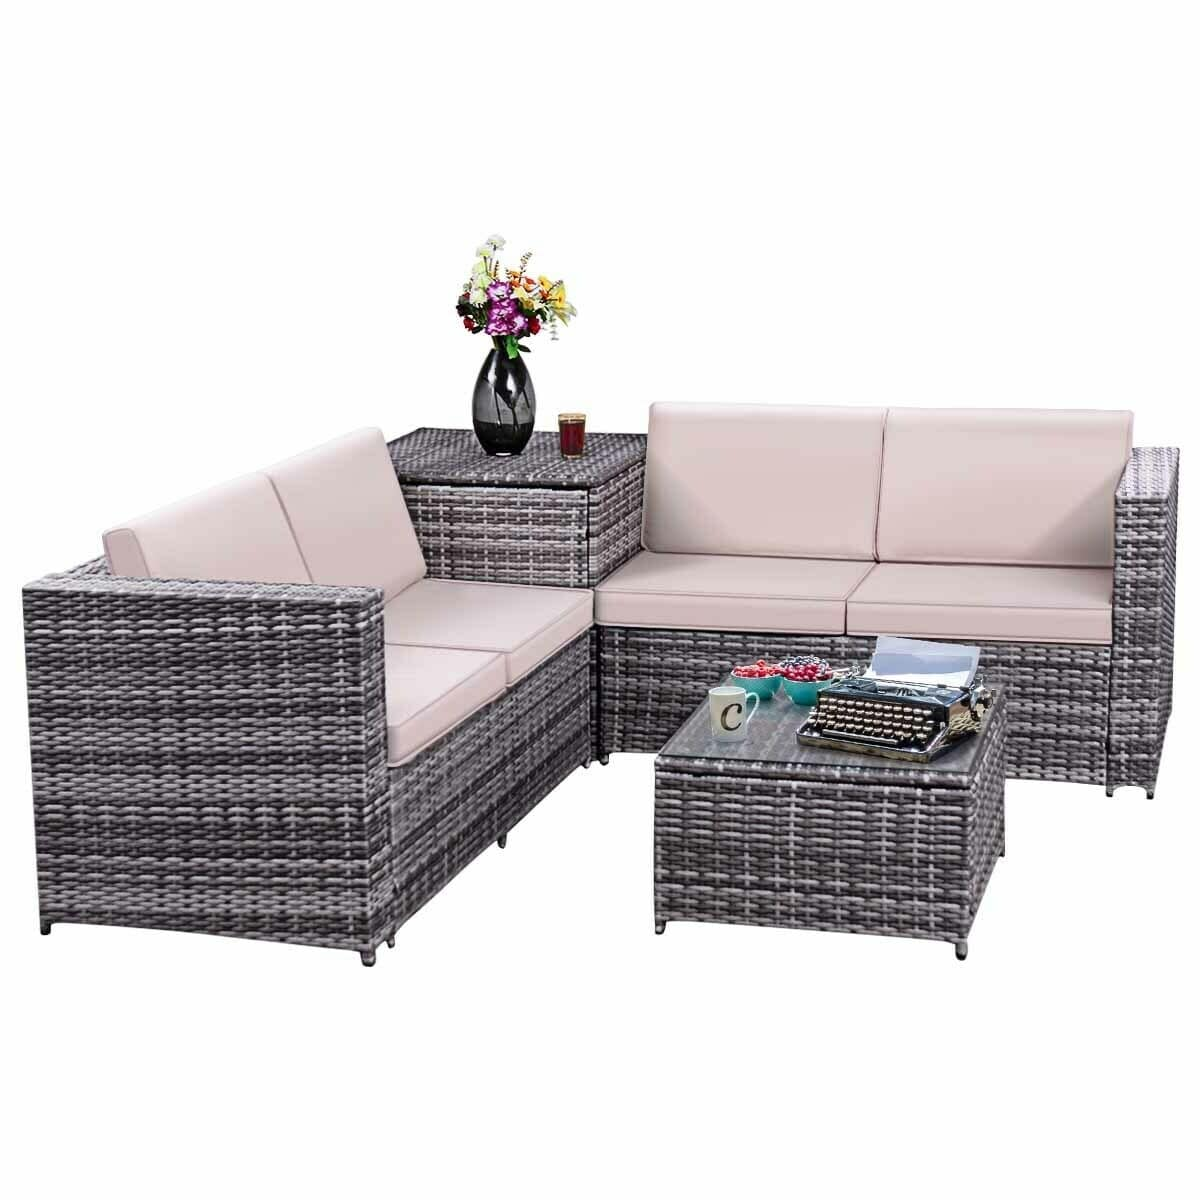 Best Choice Products 5pc Rattan Wicker Sofa Set Instructions Costway 4pcs Patio Rattan Wicker Furniture Set Sofa Loveseat Cushioned W Storage Box As Pic